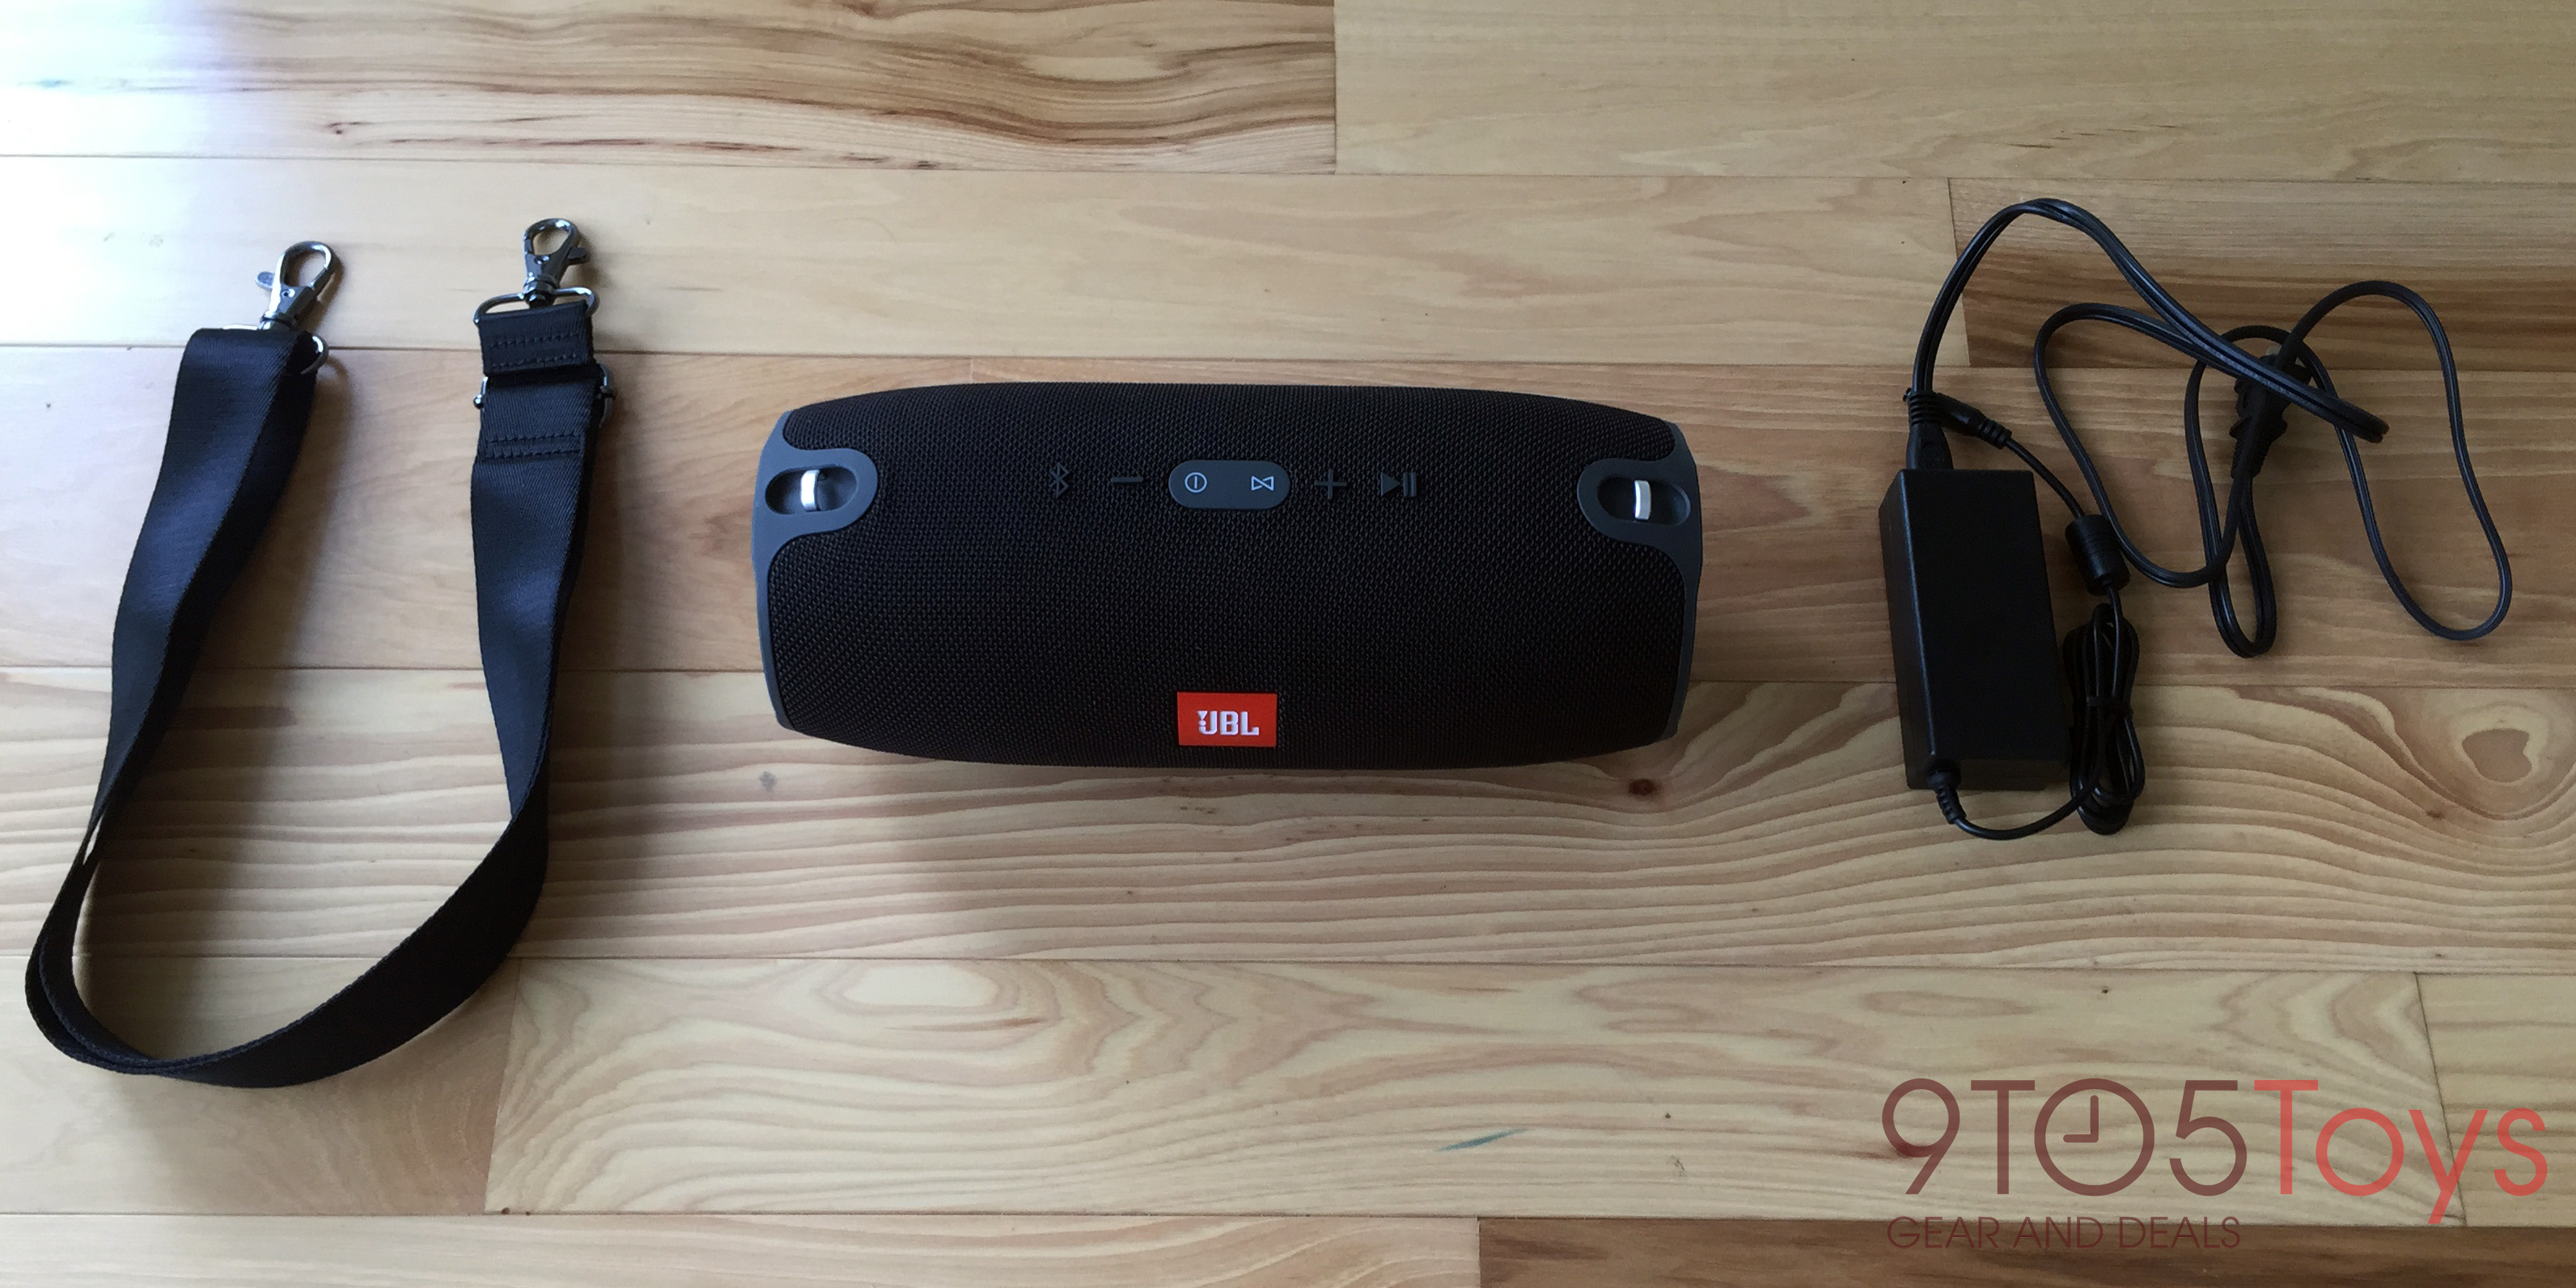 jbl-xtreme-in-the-box-9to5toys